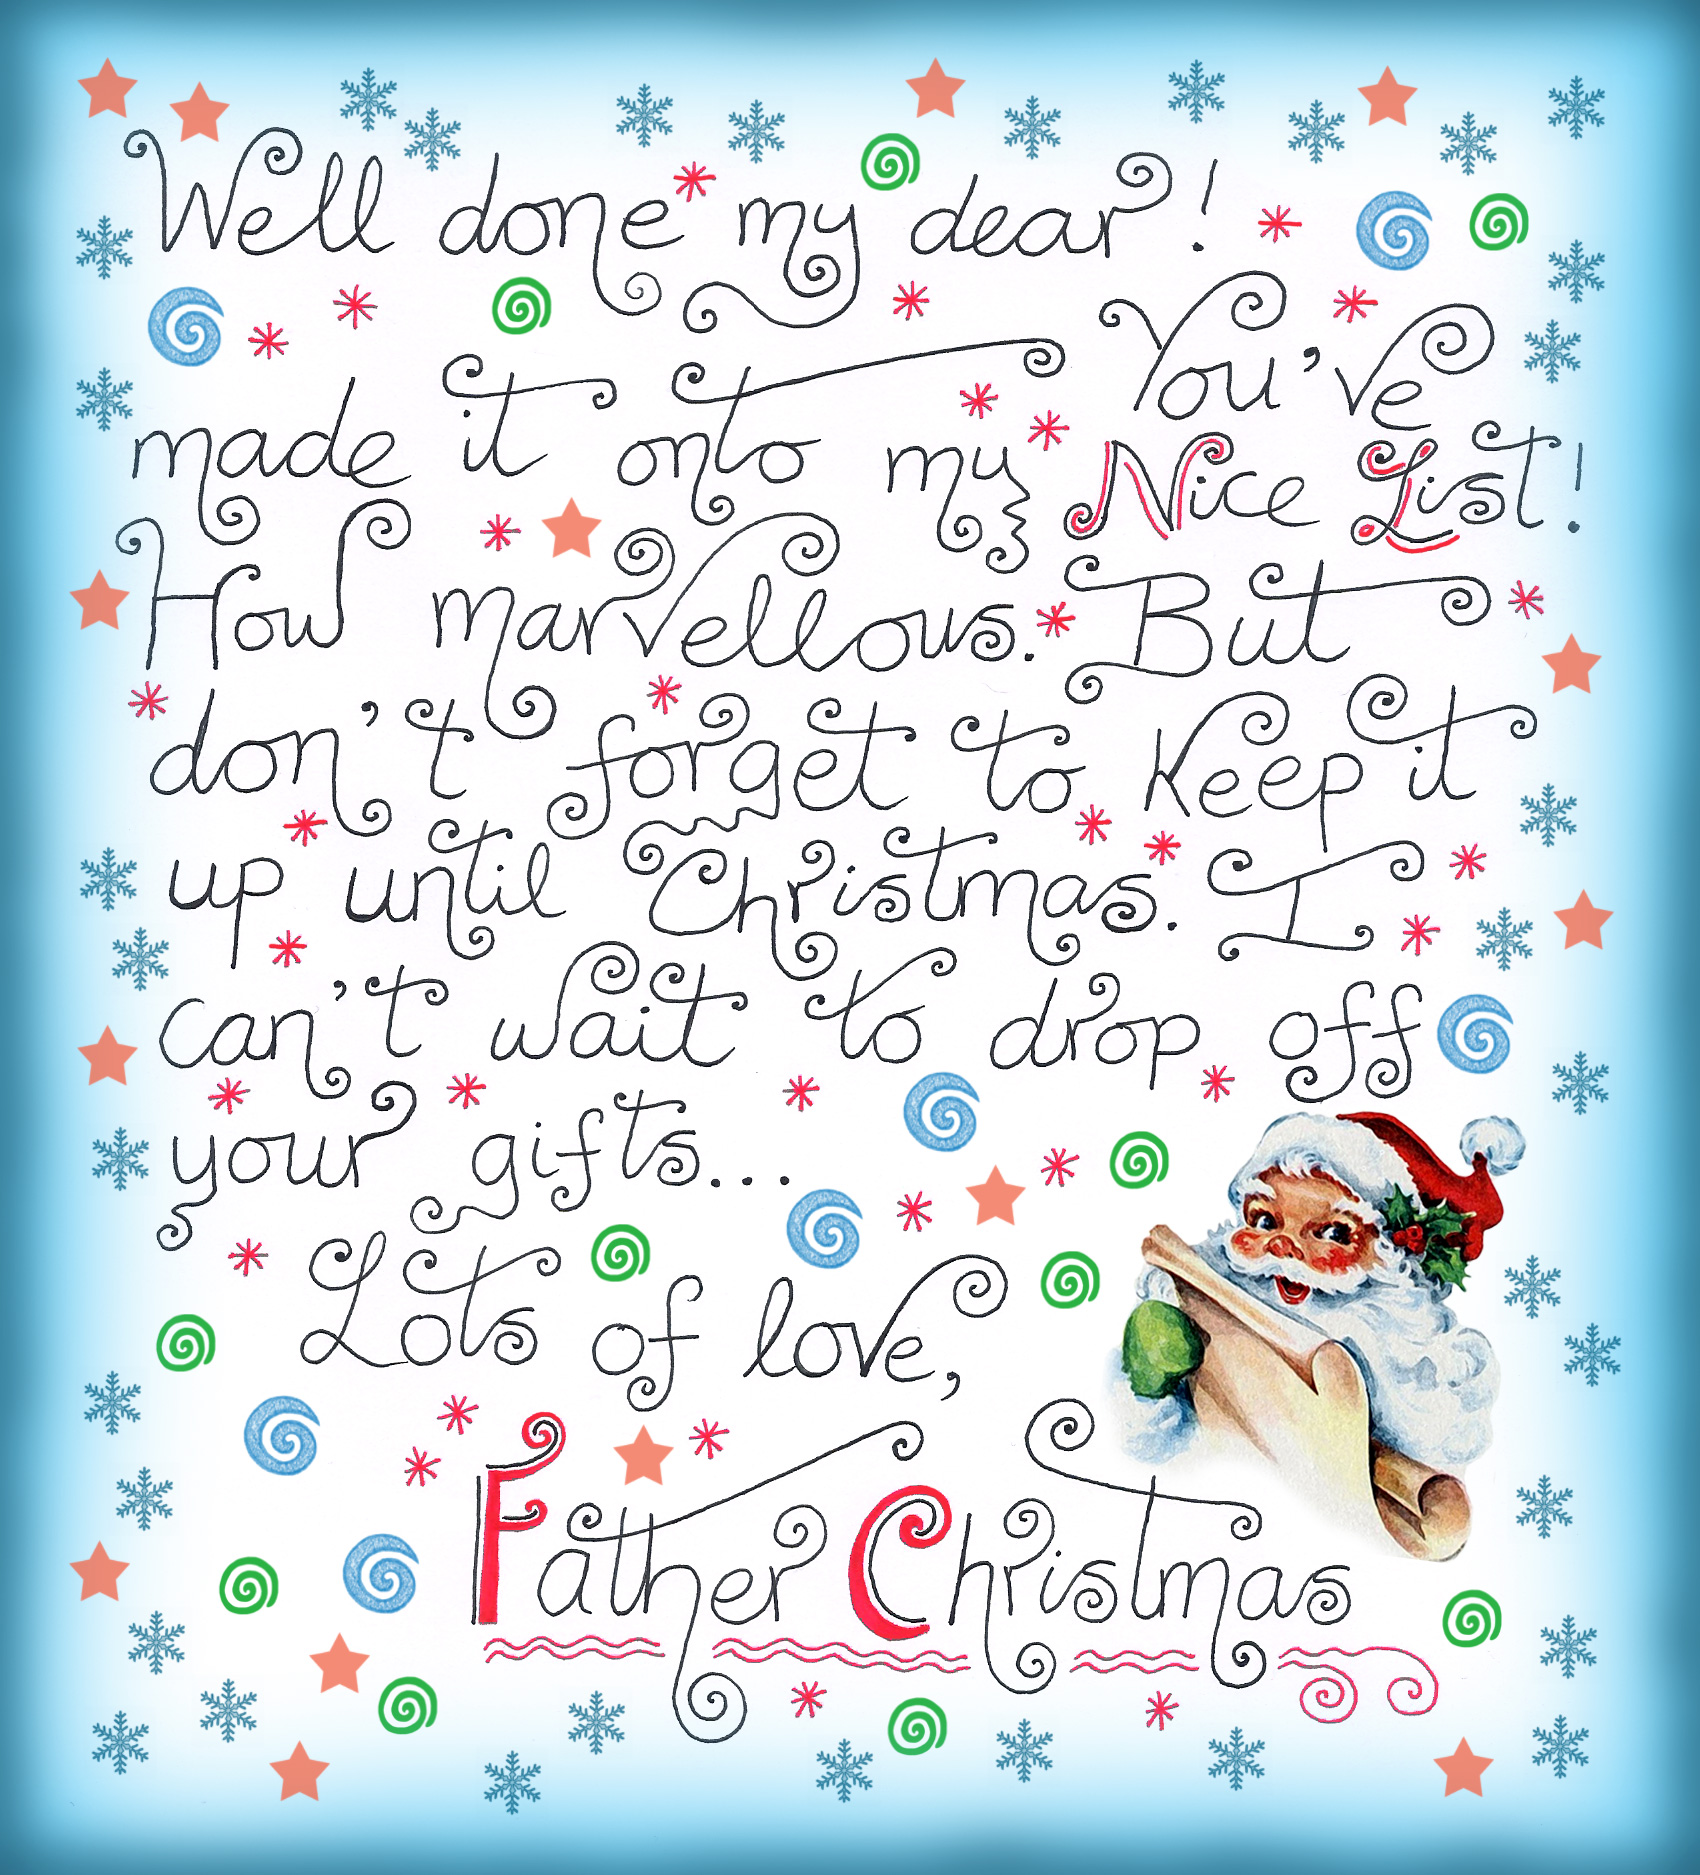 A note from Father Christmas to say you're on the Nice List